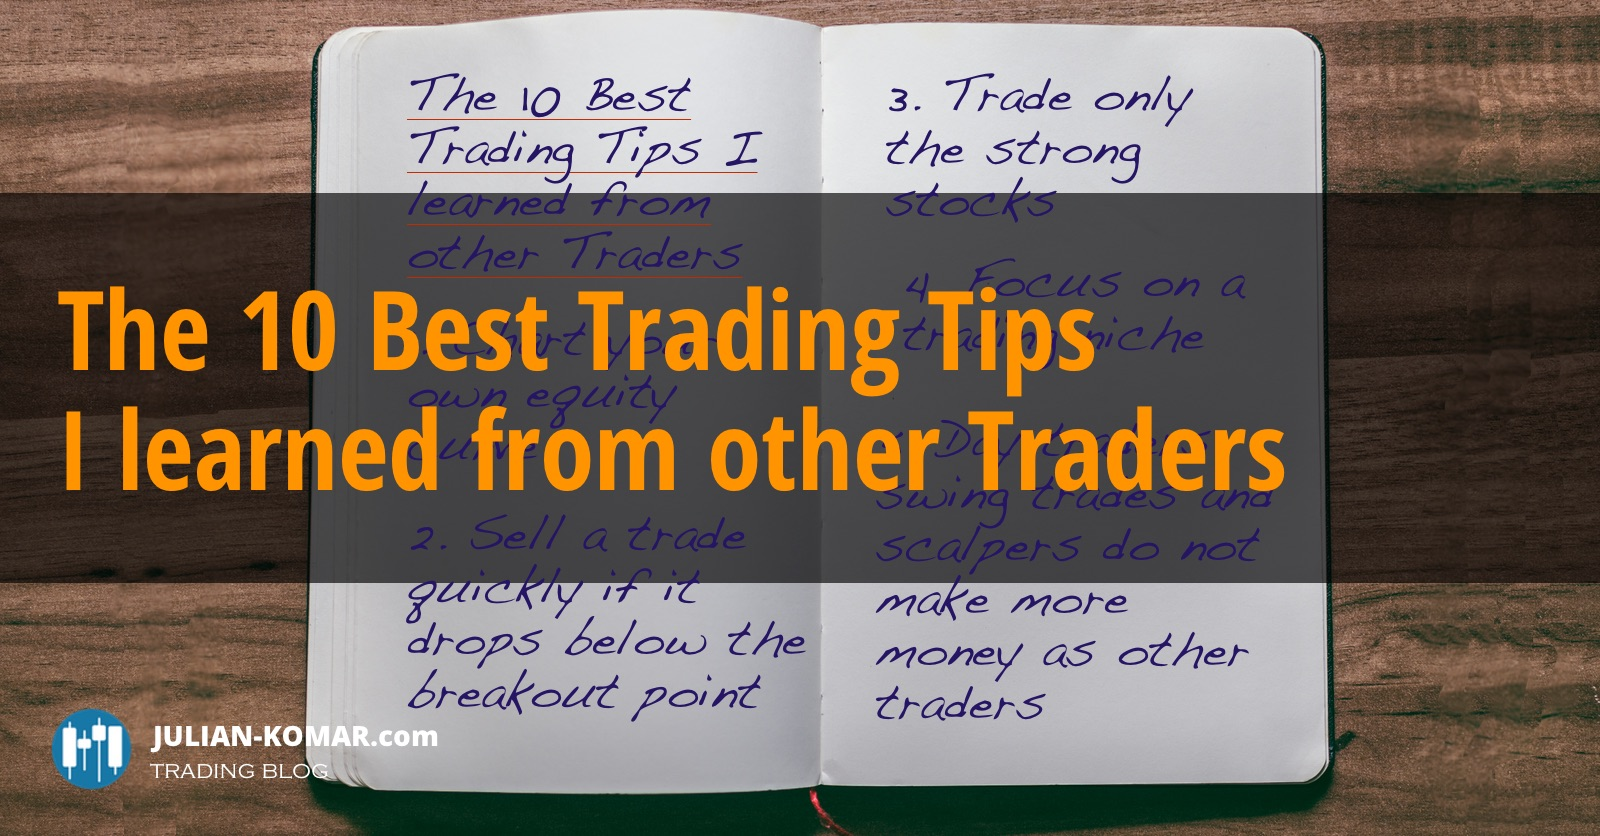 The 10 Best Trading Tips I learned from other Traders - Trading Blog